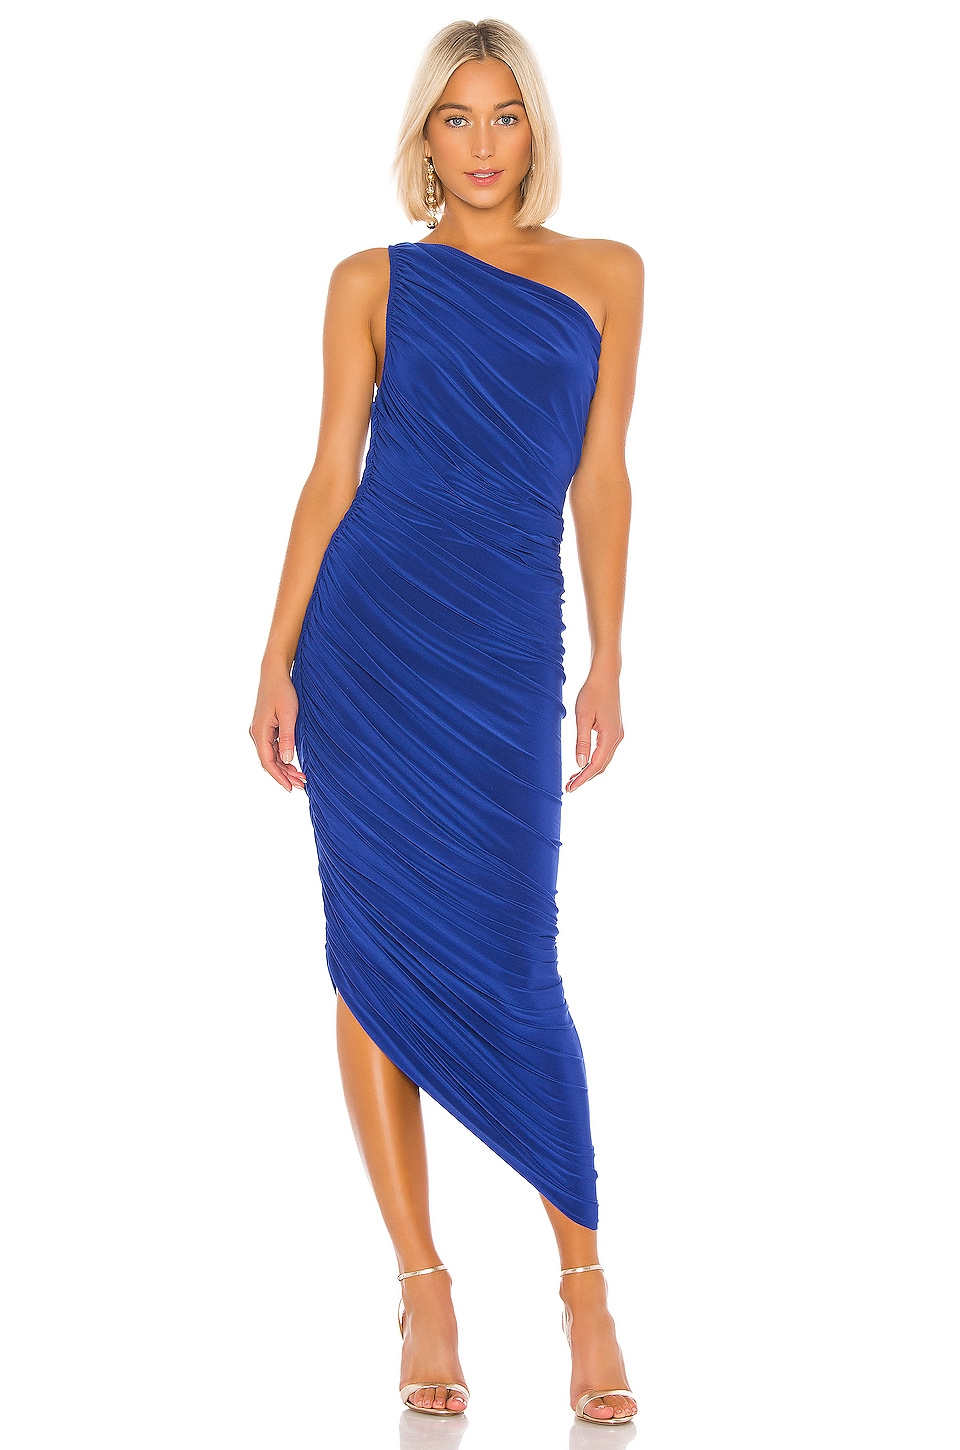 Norma Kamali Diana Gown in Berry Blue